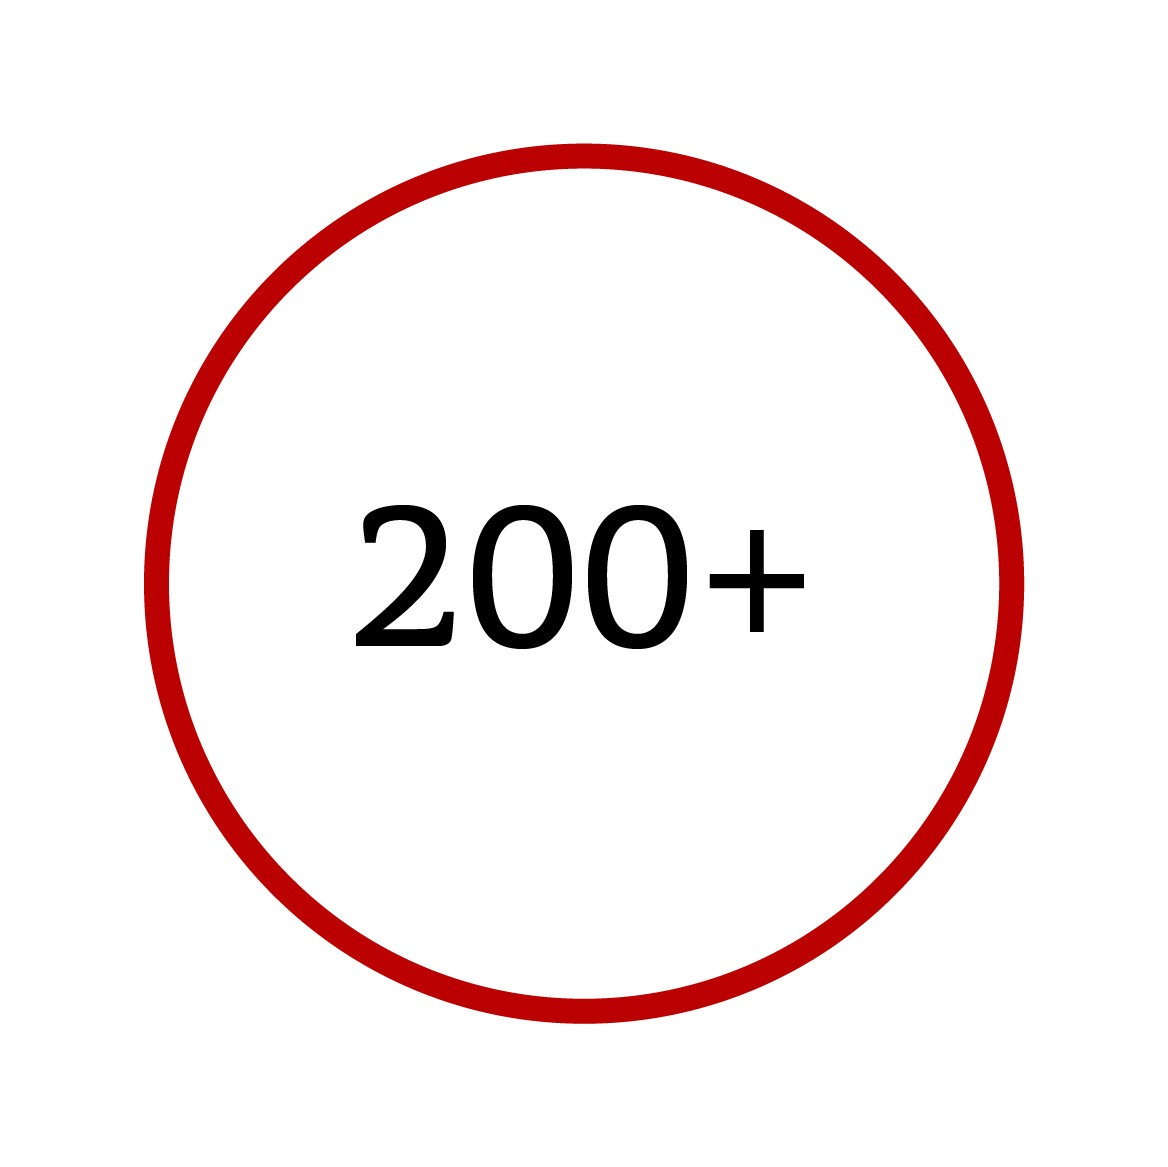 graphic of circle with text inside, two hundred plus